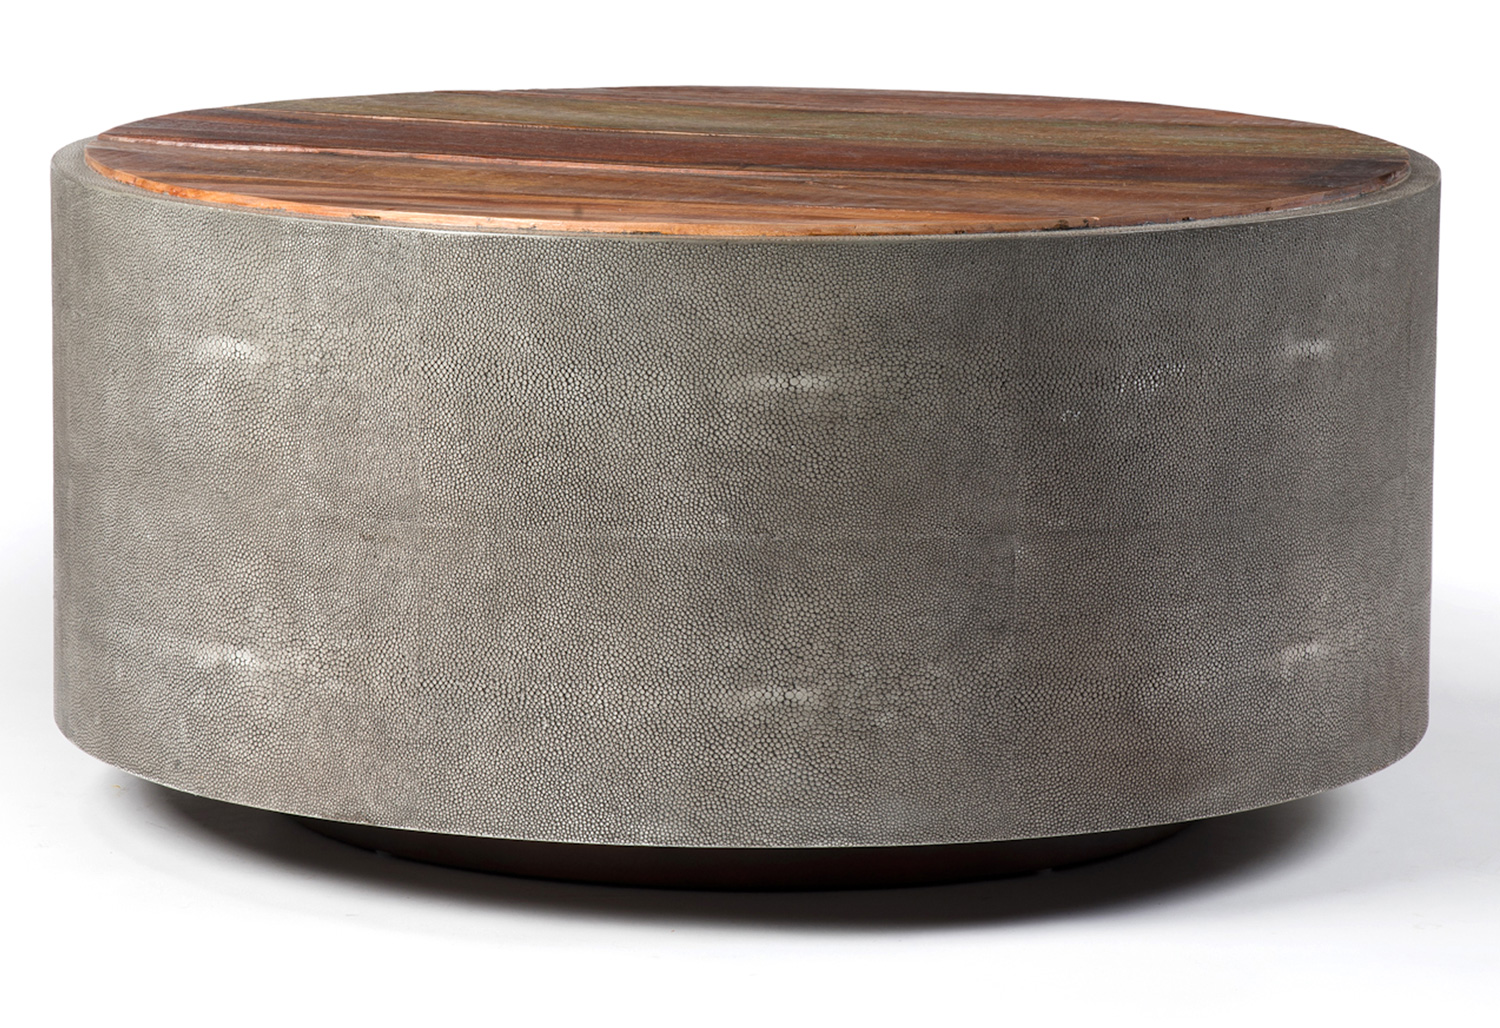 Four Hands Bina Collection Crosby Round Coffee Table